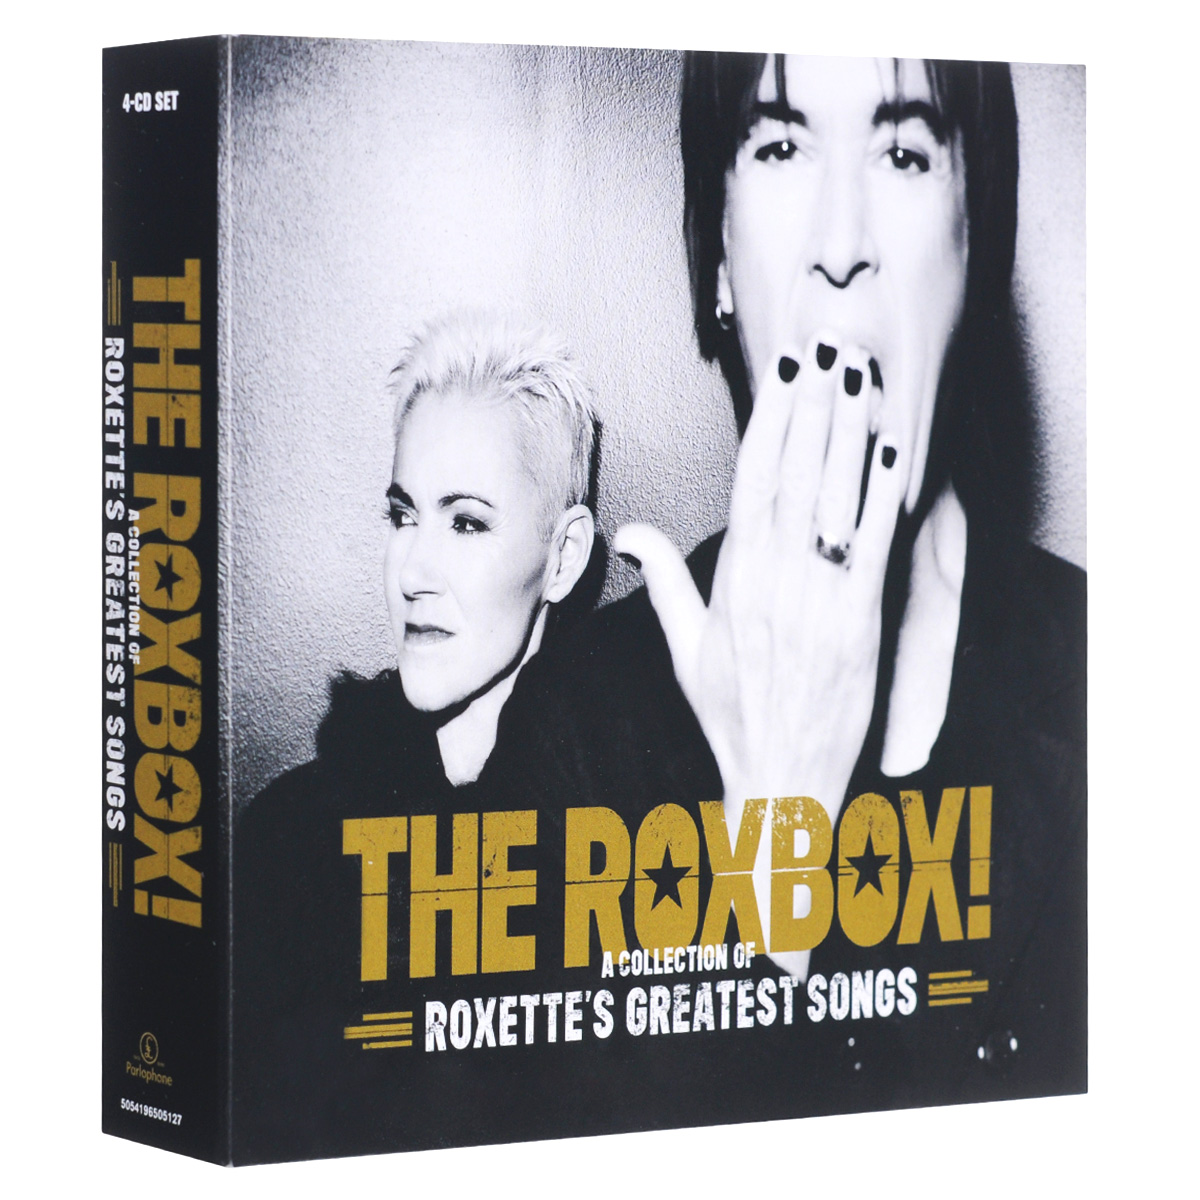 Roxette Roxette. The Roxbox! The Collection Of Roxette's Greatest Songs (4 CD) 400mm multi function linear actuator motor stroke heavy duty dc 12v 75kg 165lbs reliable performance